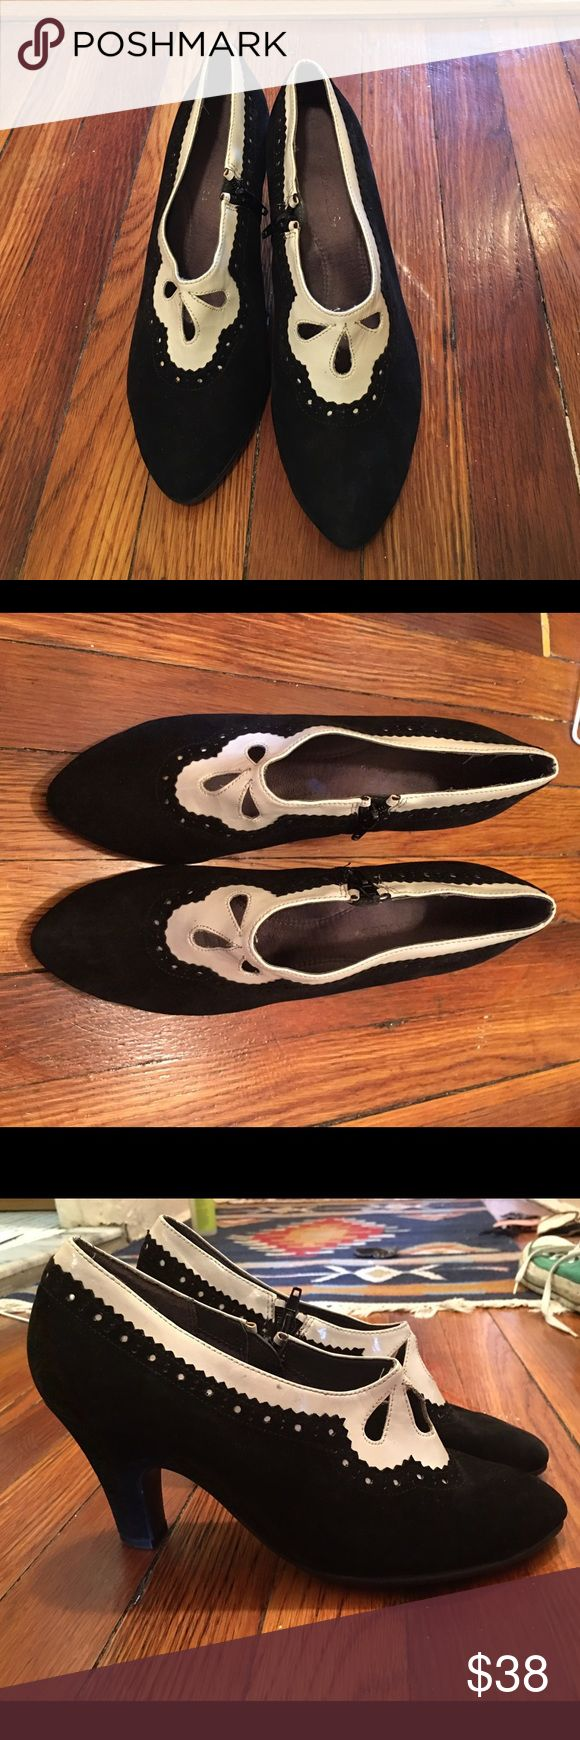 Beautiful tuxedo black suede boots - Size 8.5 Great boots for work or a fancy event. Black suede with white patten leather accents. VERY comfortable... And I almost never wear heels. A few scuffs but not noticeable. AEROSOLES Shoes Ankle Boots & Booties